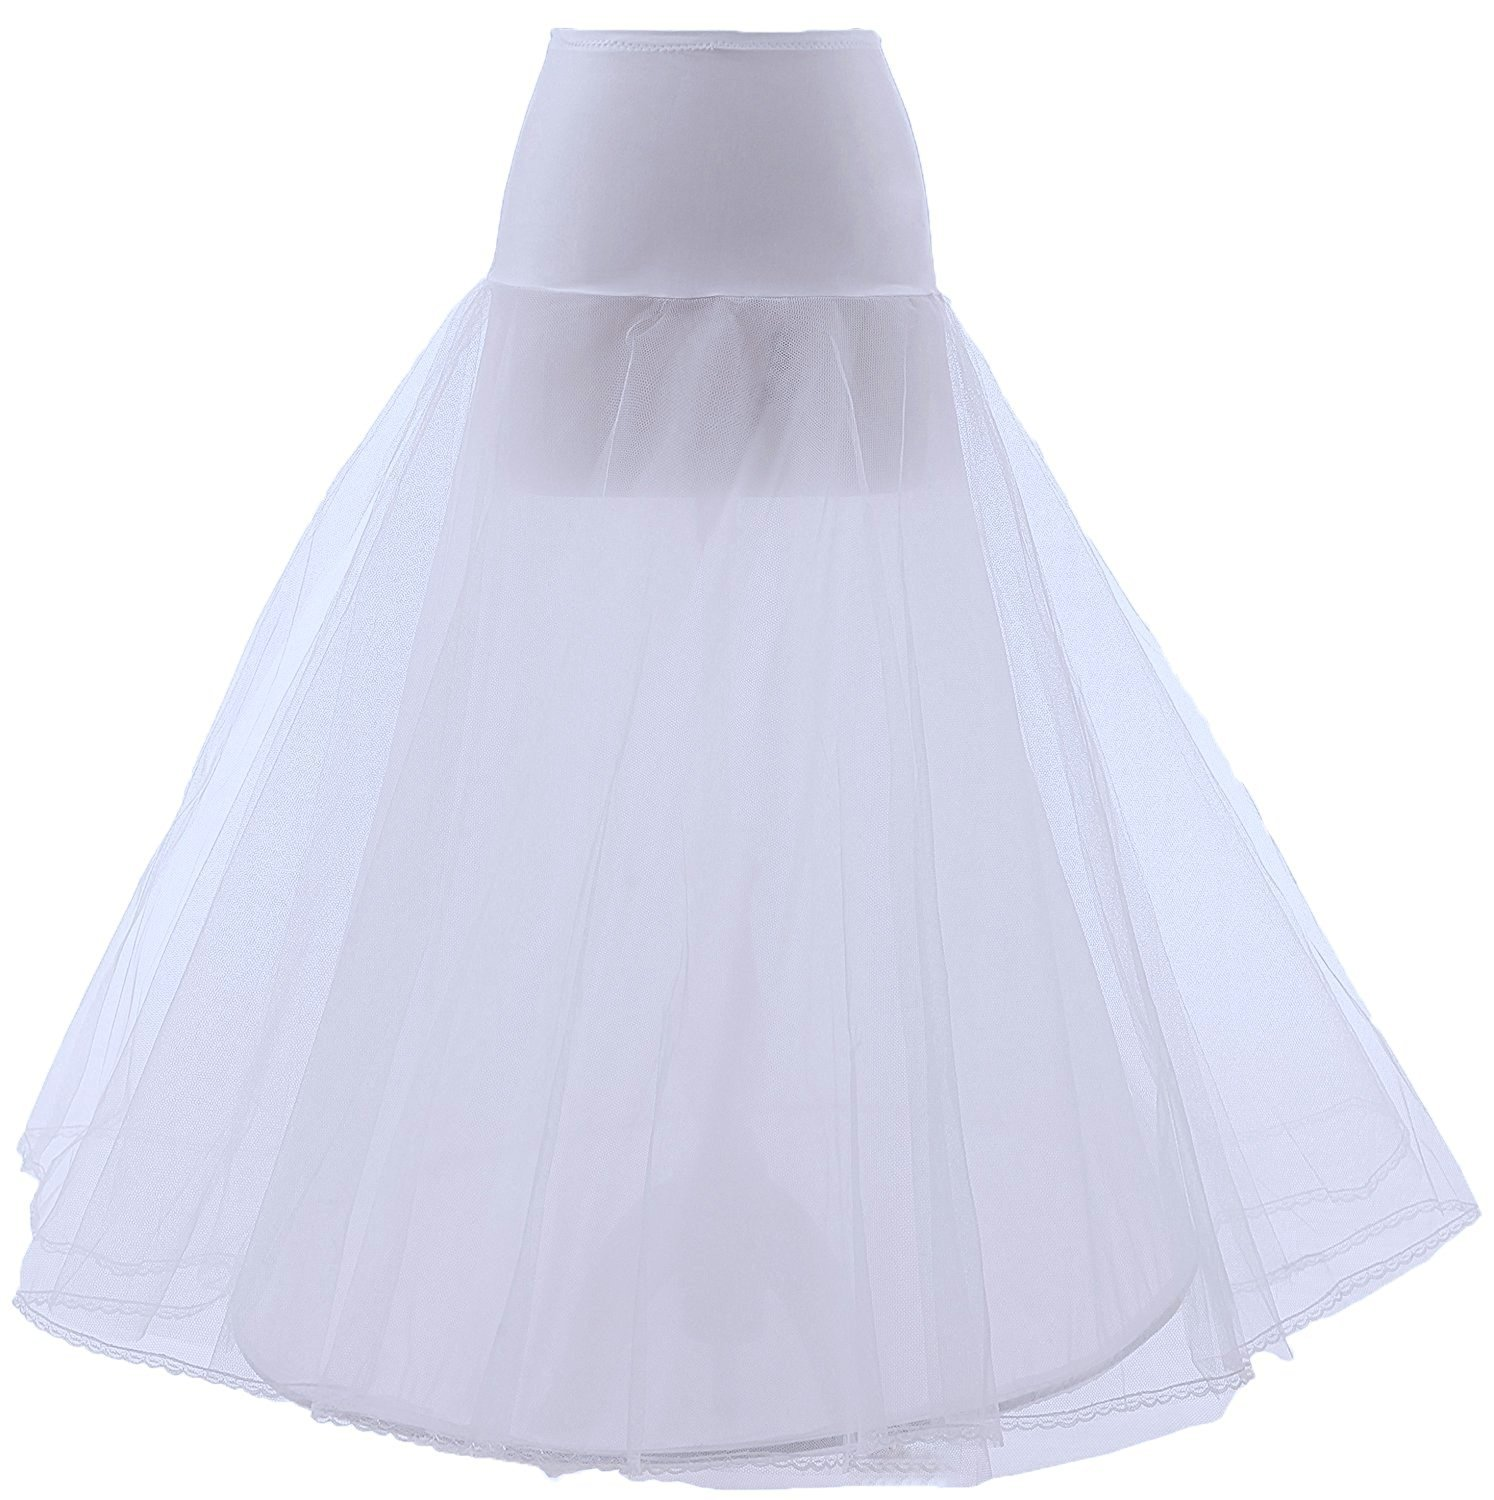 Women's Wedding Underskirt Slip Long Crinoline Tulle Bridal Petticoat Style 1 Mermaid Juntai